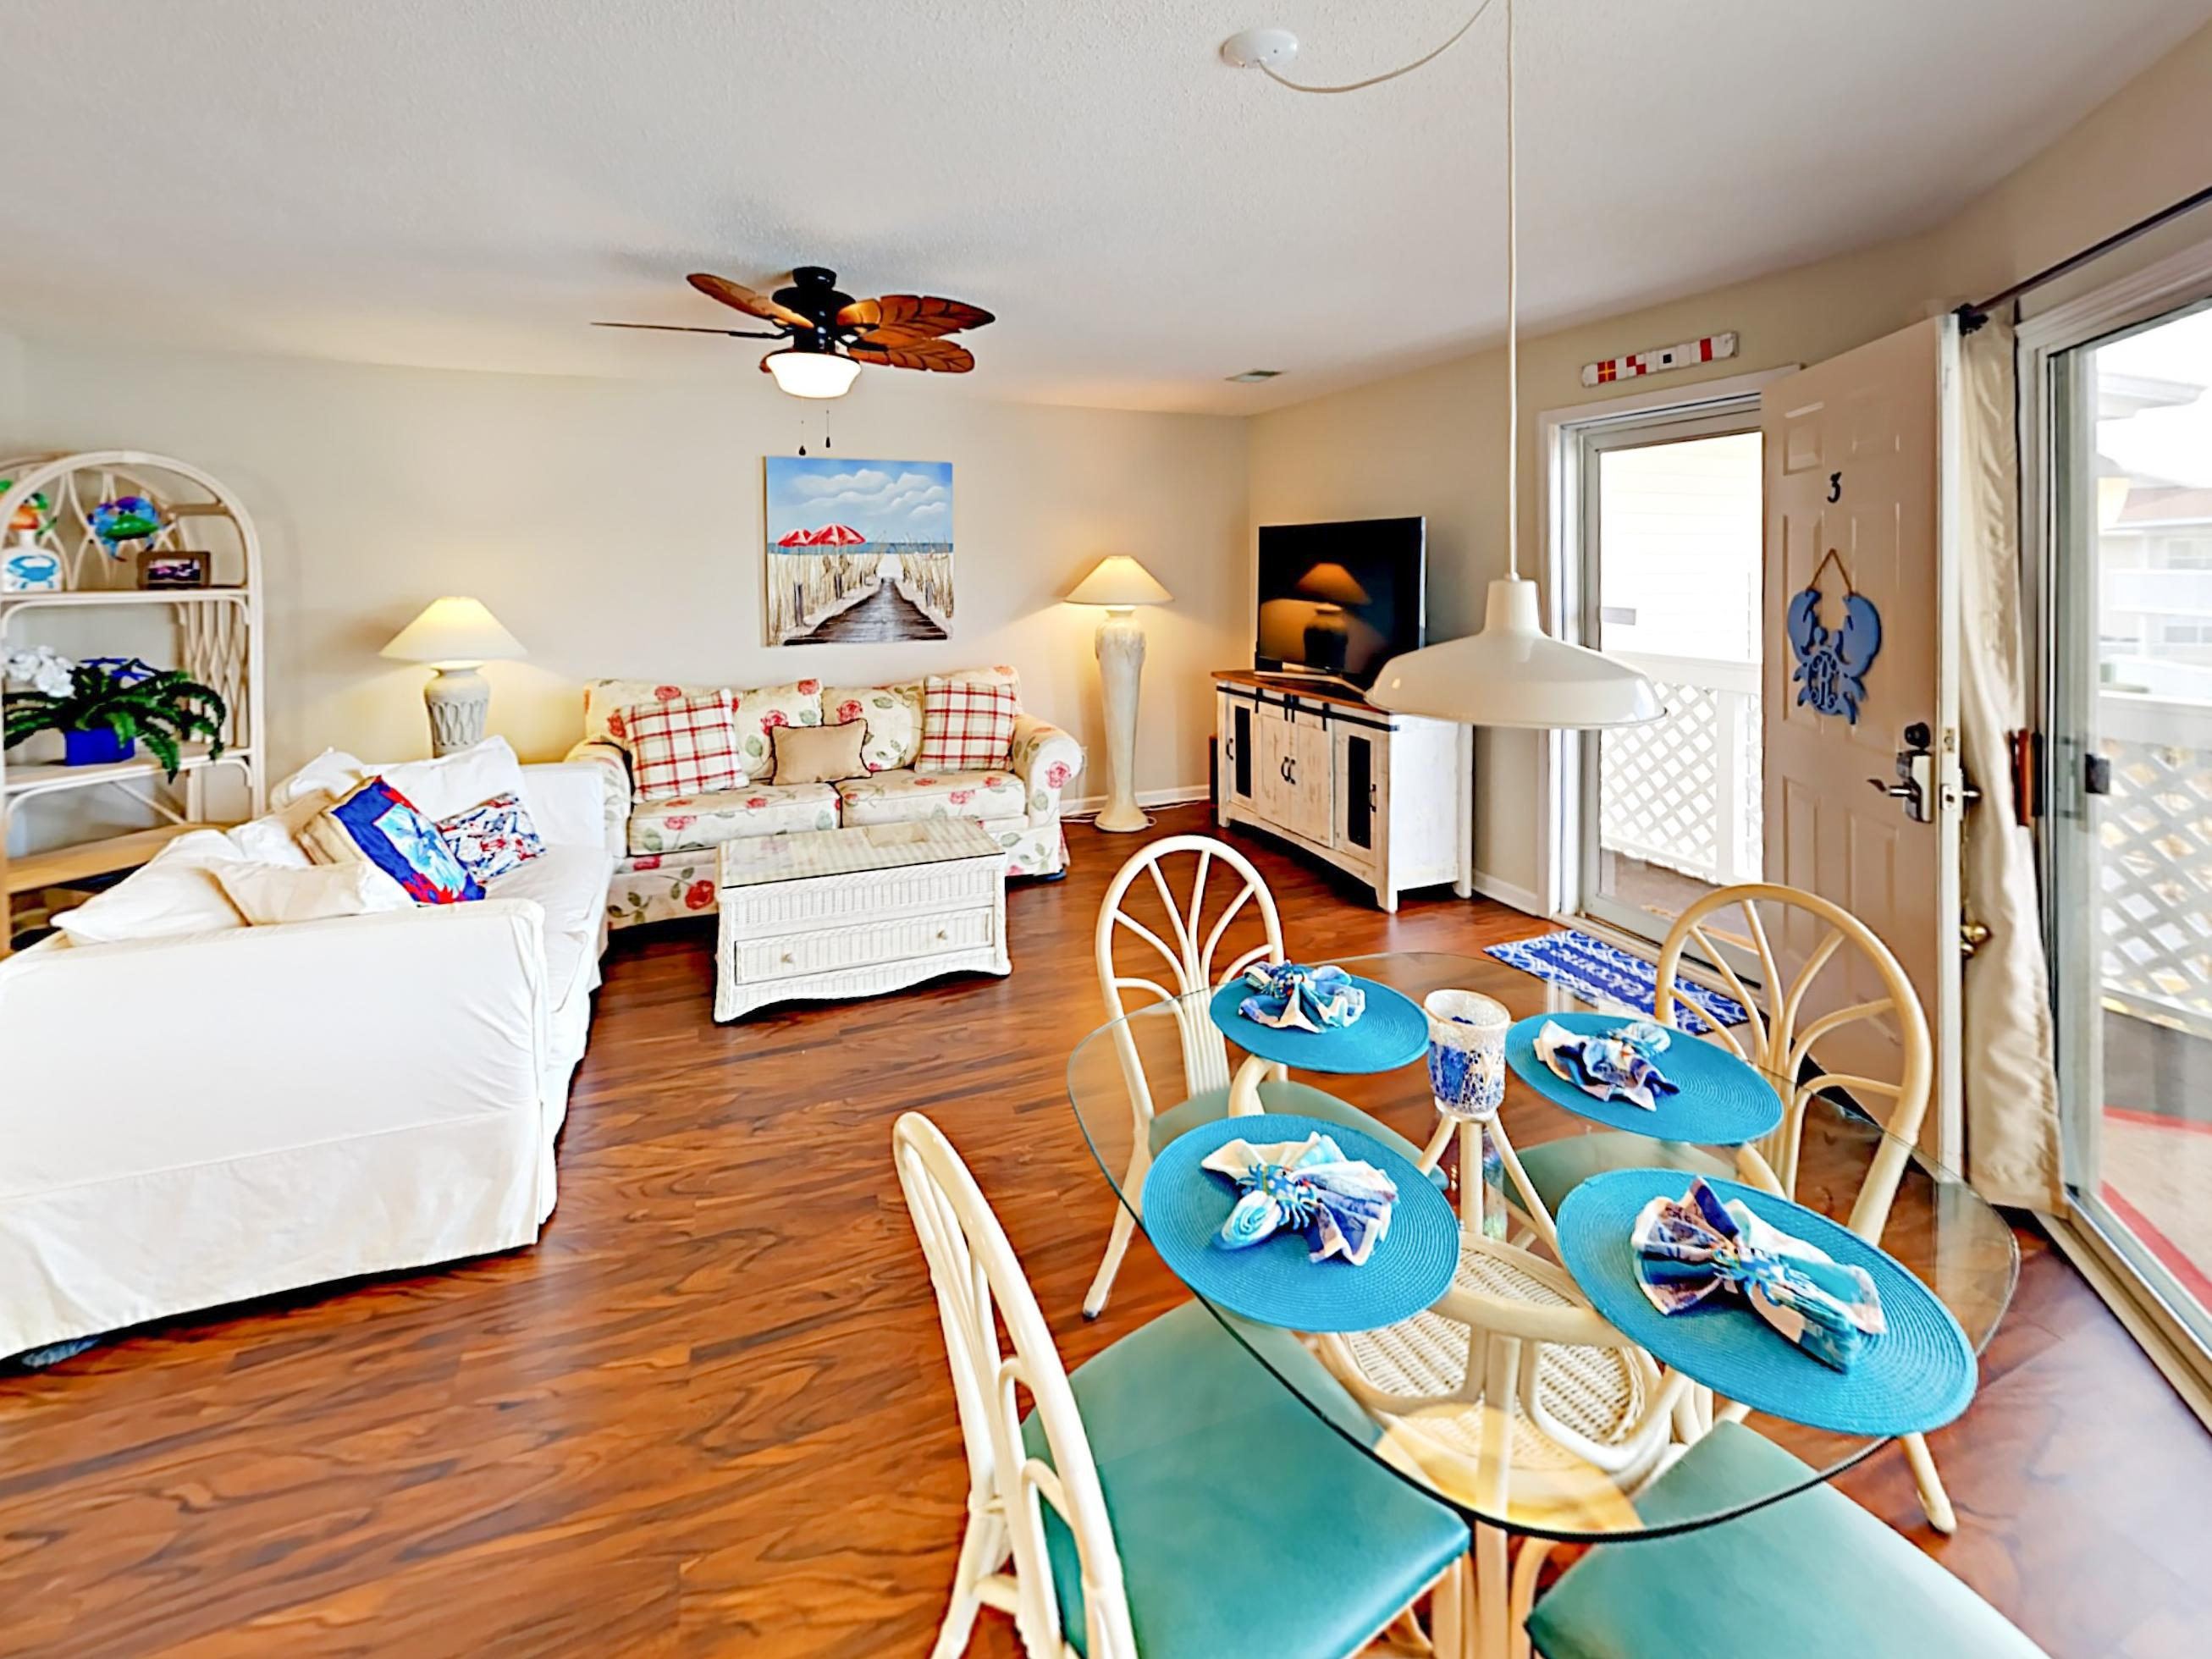 This stunning condo is professionally managed by TurnKey Vacation Rentals.